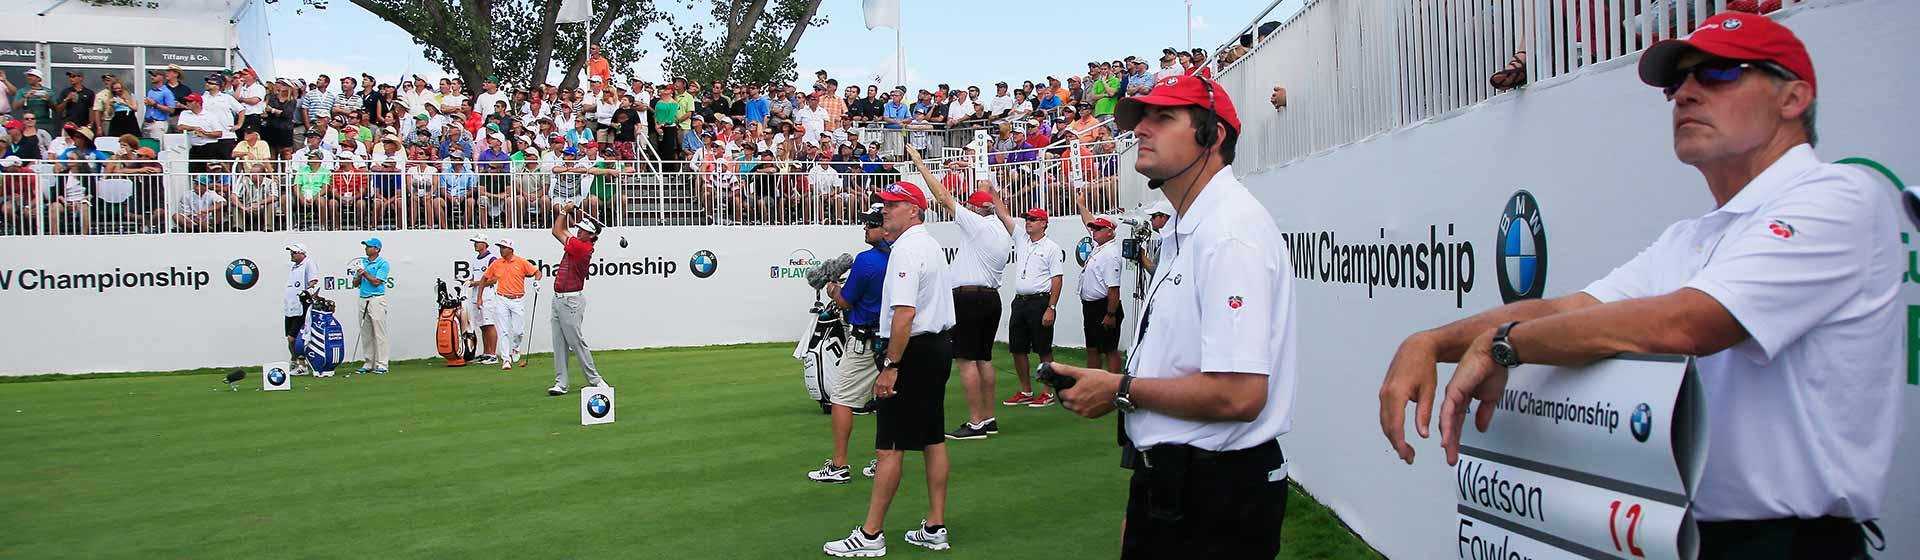 Volunteers | 2020 BMW CHAMPIONSHIP